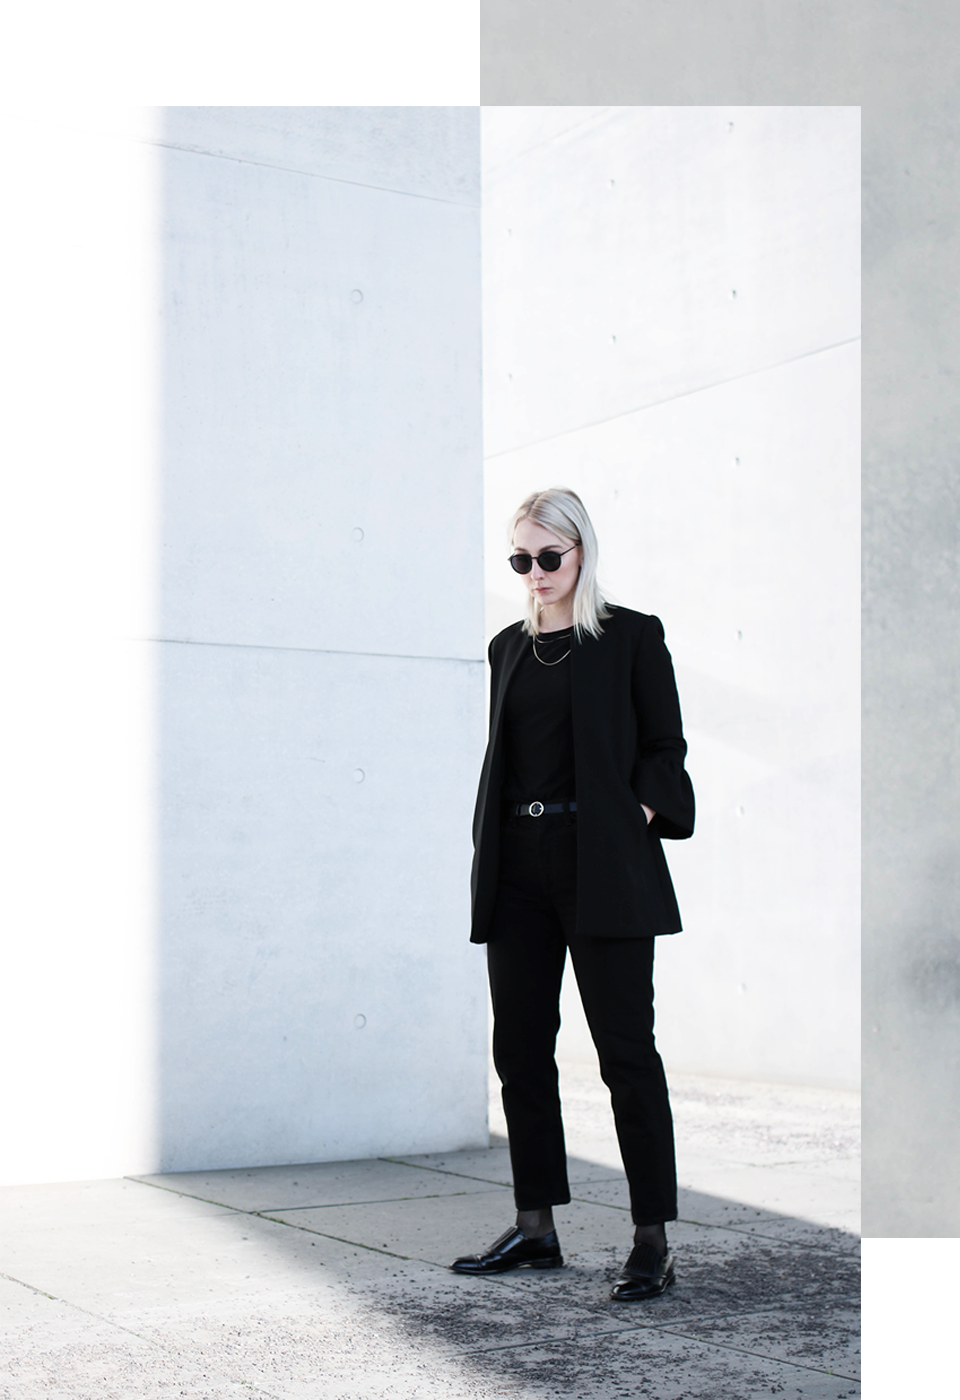 noa-noir-fashion-outfit-all-black-monochrome-minimal-inspiration-architecture-photography-1.png